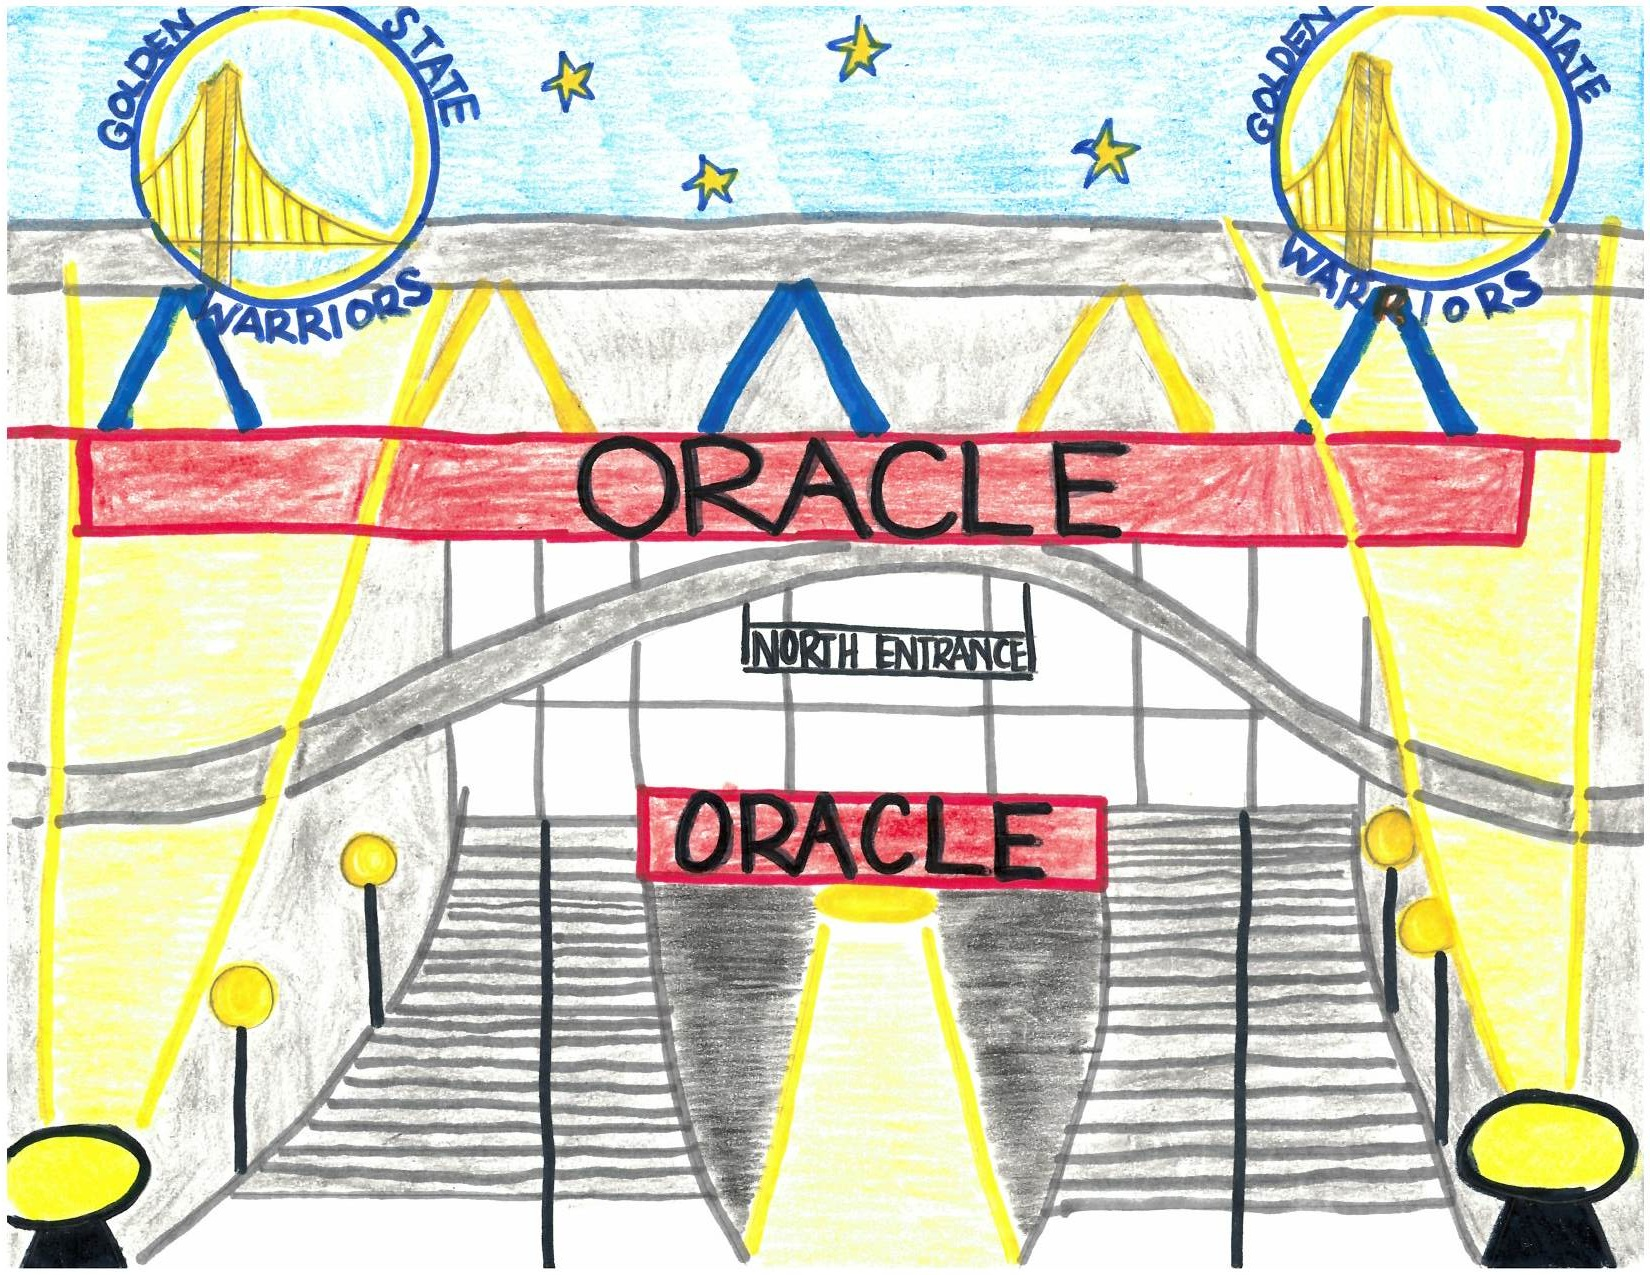 Jayla W., age 10, receives an honorable mention for 'The Oracle Arena' which she picked because of the good times she has had there with her family and how pretty the building is at night when the blue and yellow lights come off of the building